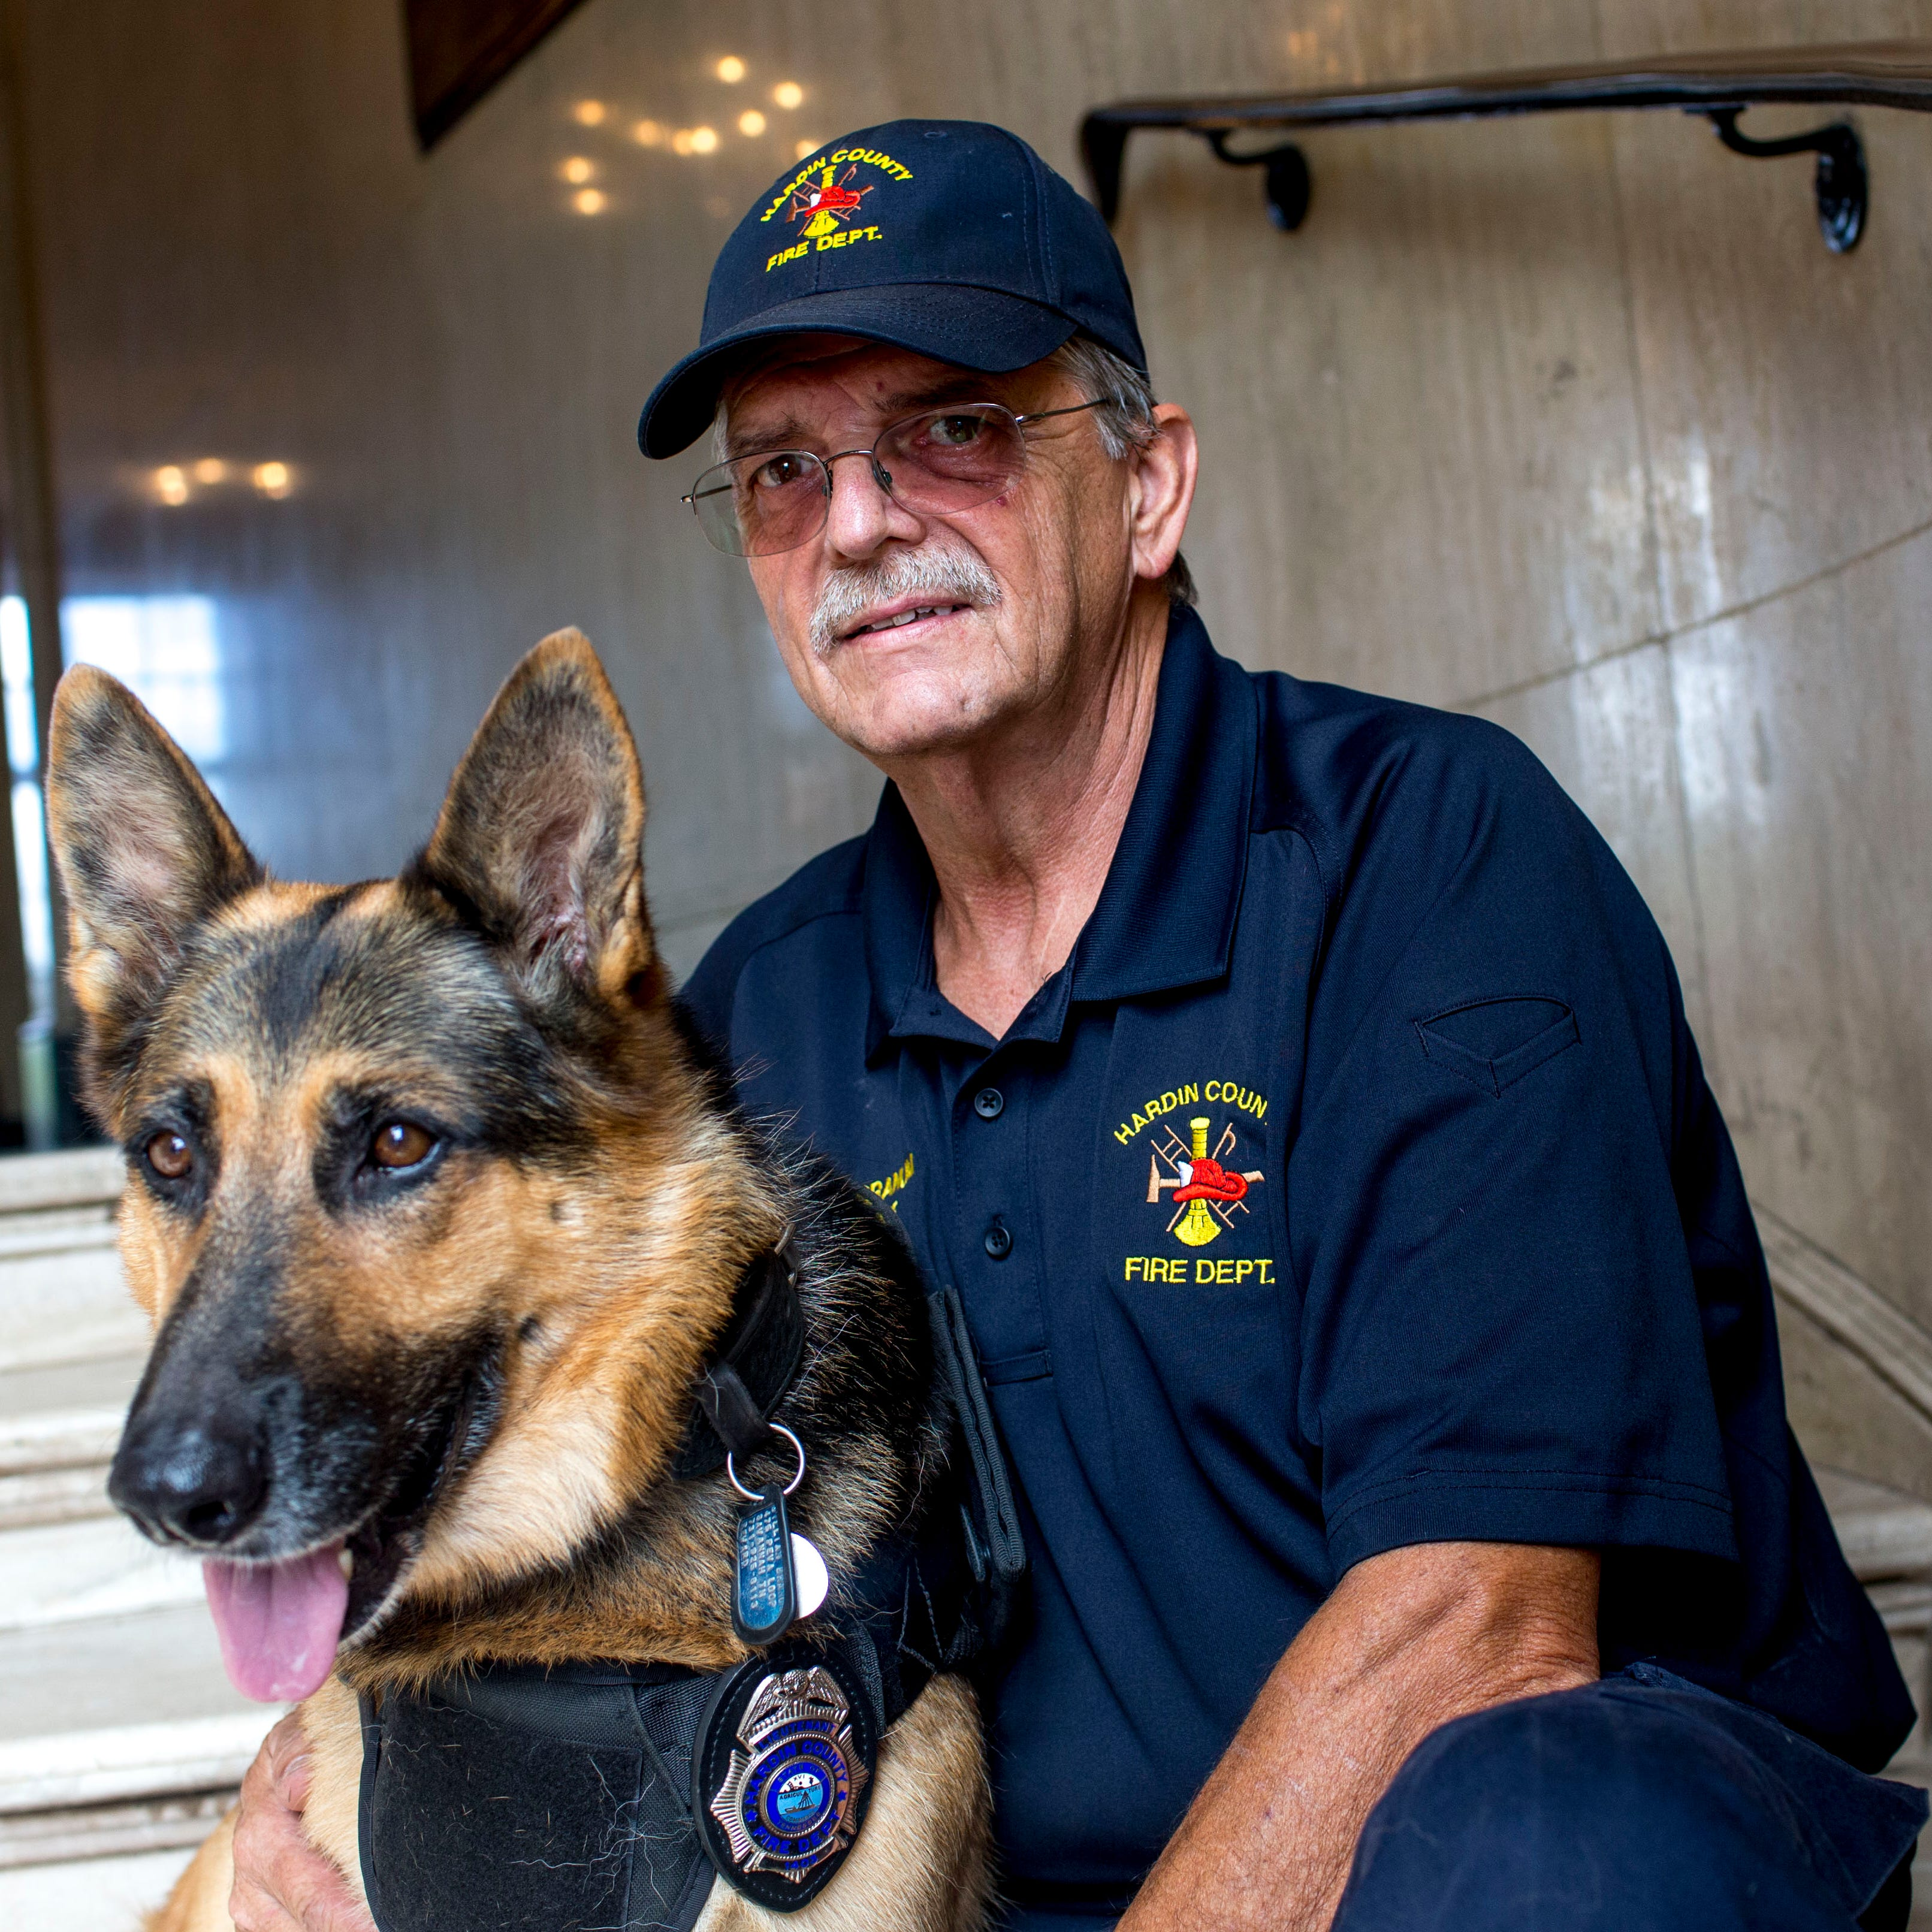 Firefighter and search and rescue dog help fight cancer